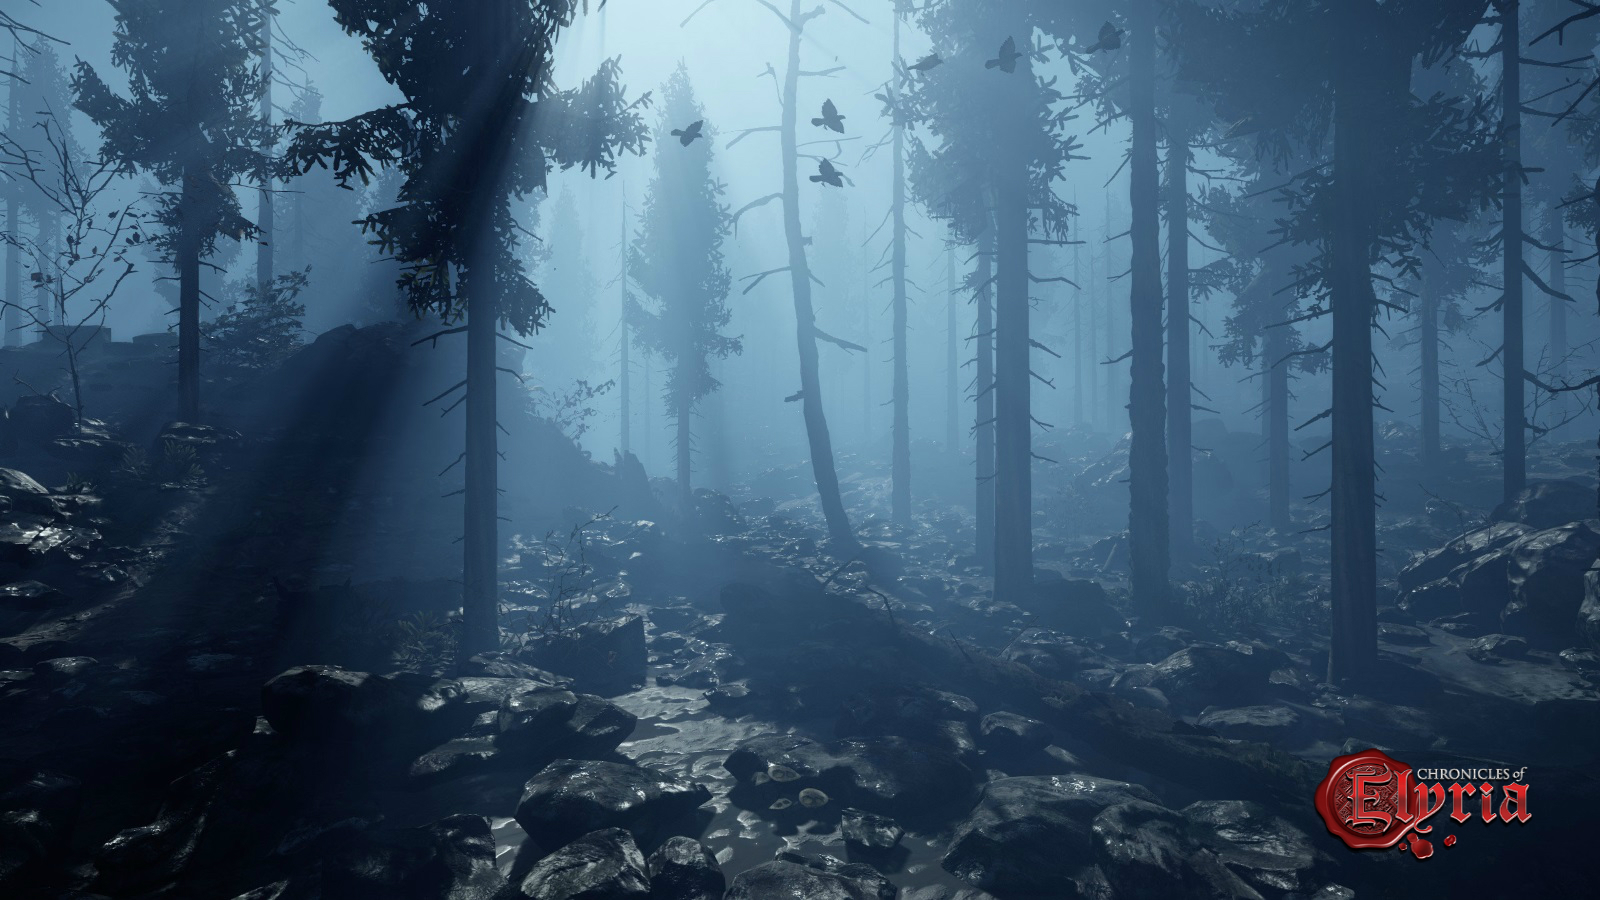 In-game view of one of Elyria's darker forests